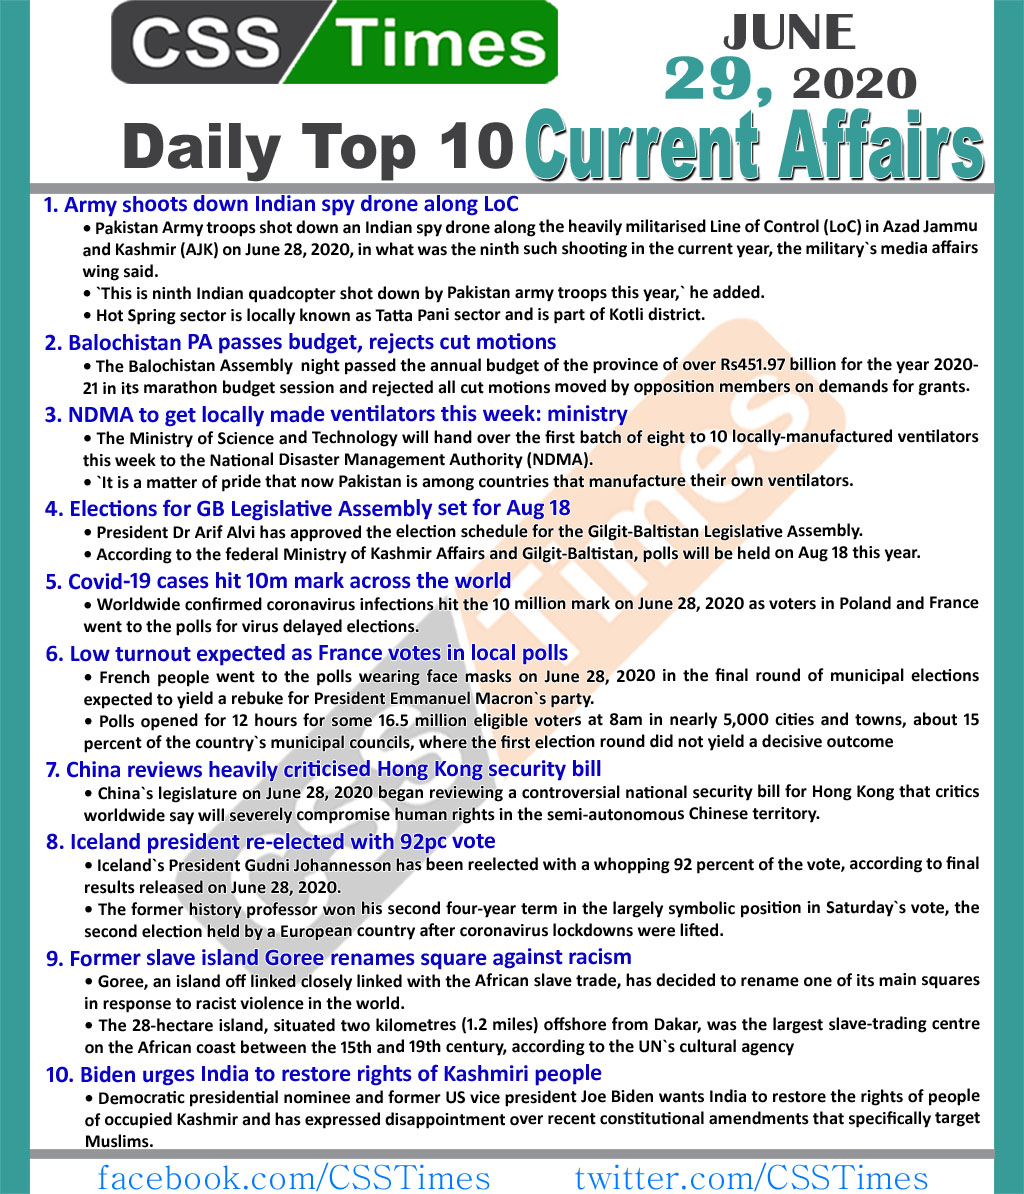 Daily Top-10 Current Affairs MCQs / News (June 29, 2020) for CSS, PMS